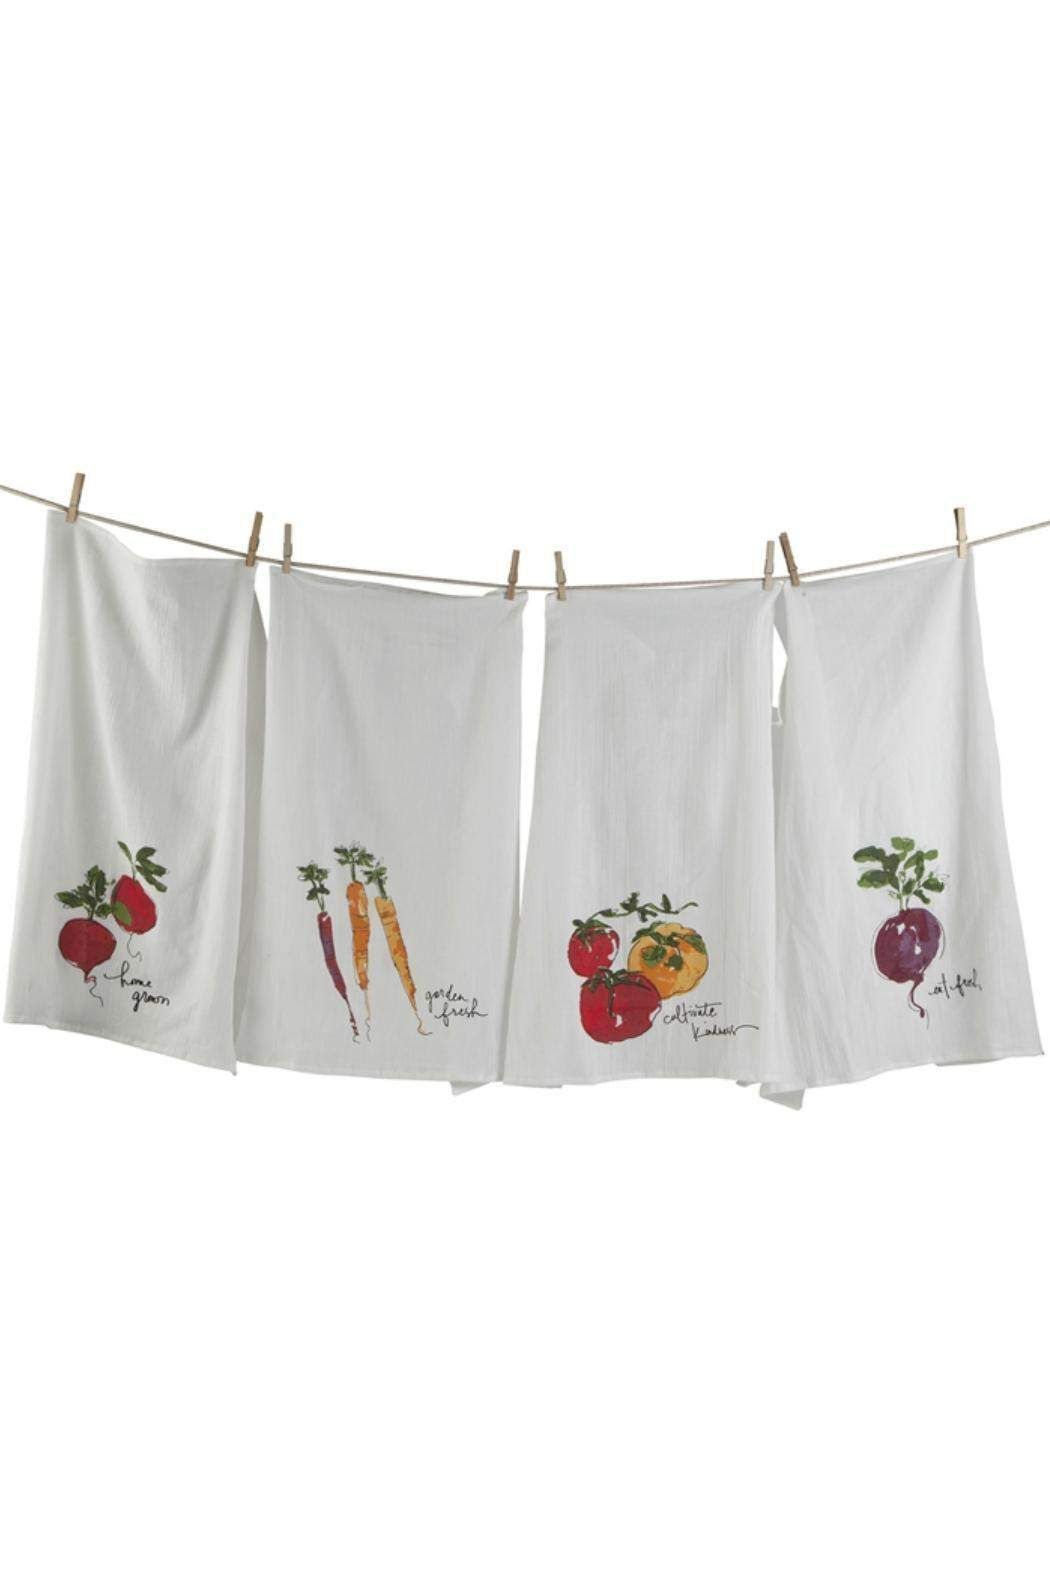 Tag Ltd Veggie Floursack Towels Kitchen Towels Dish Towels